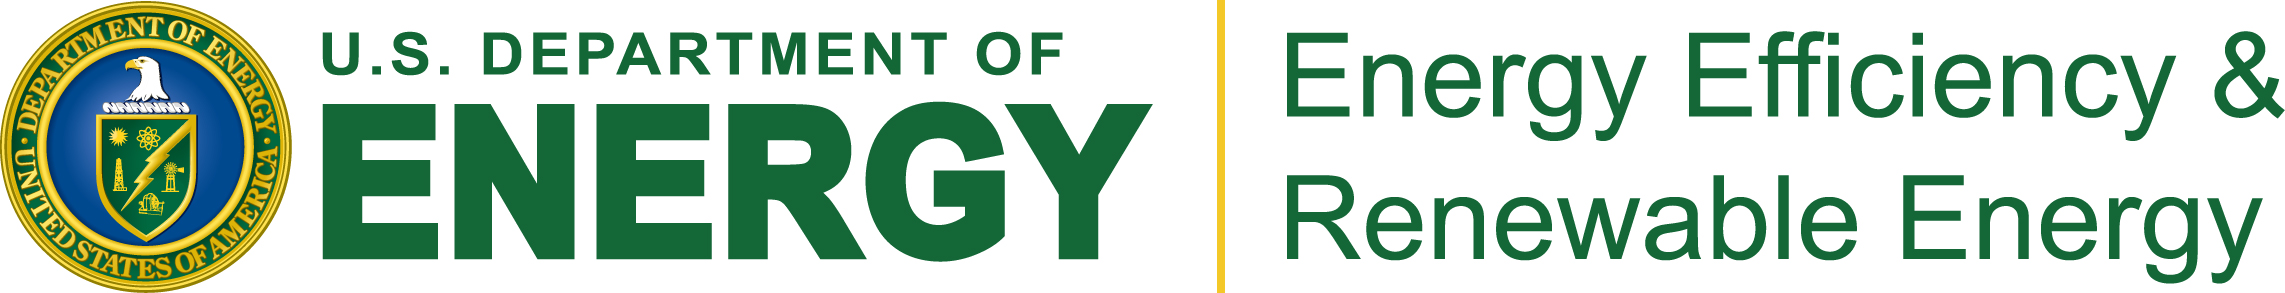 U.S. Department of Energy (DoE) Office of Energy Efficiency and Renewable Energy (EERE).